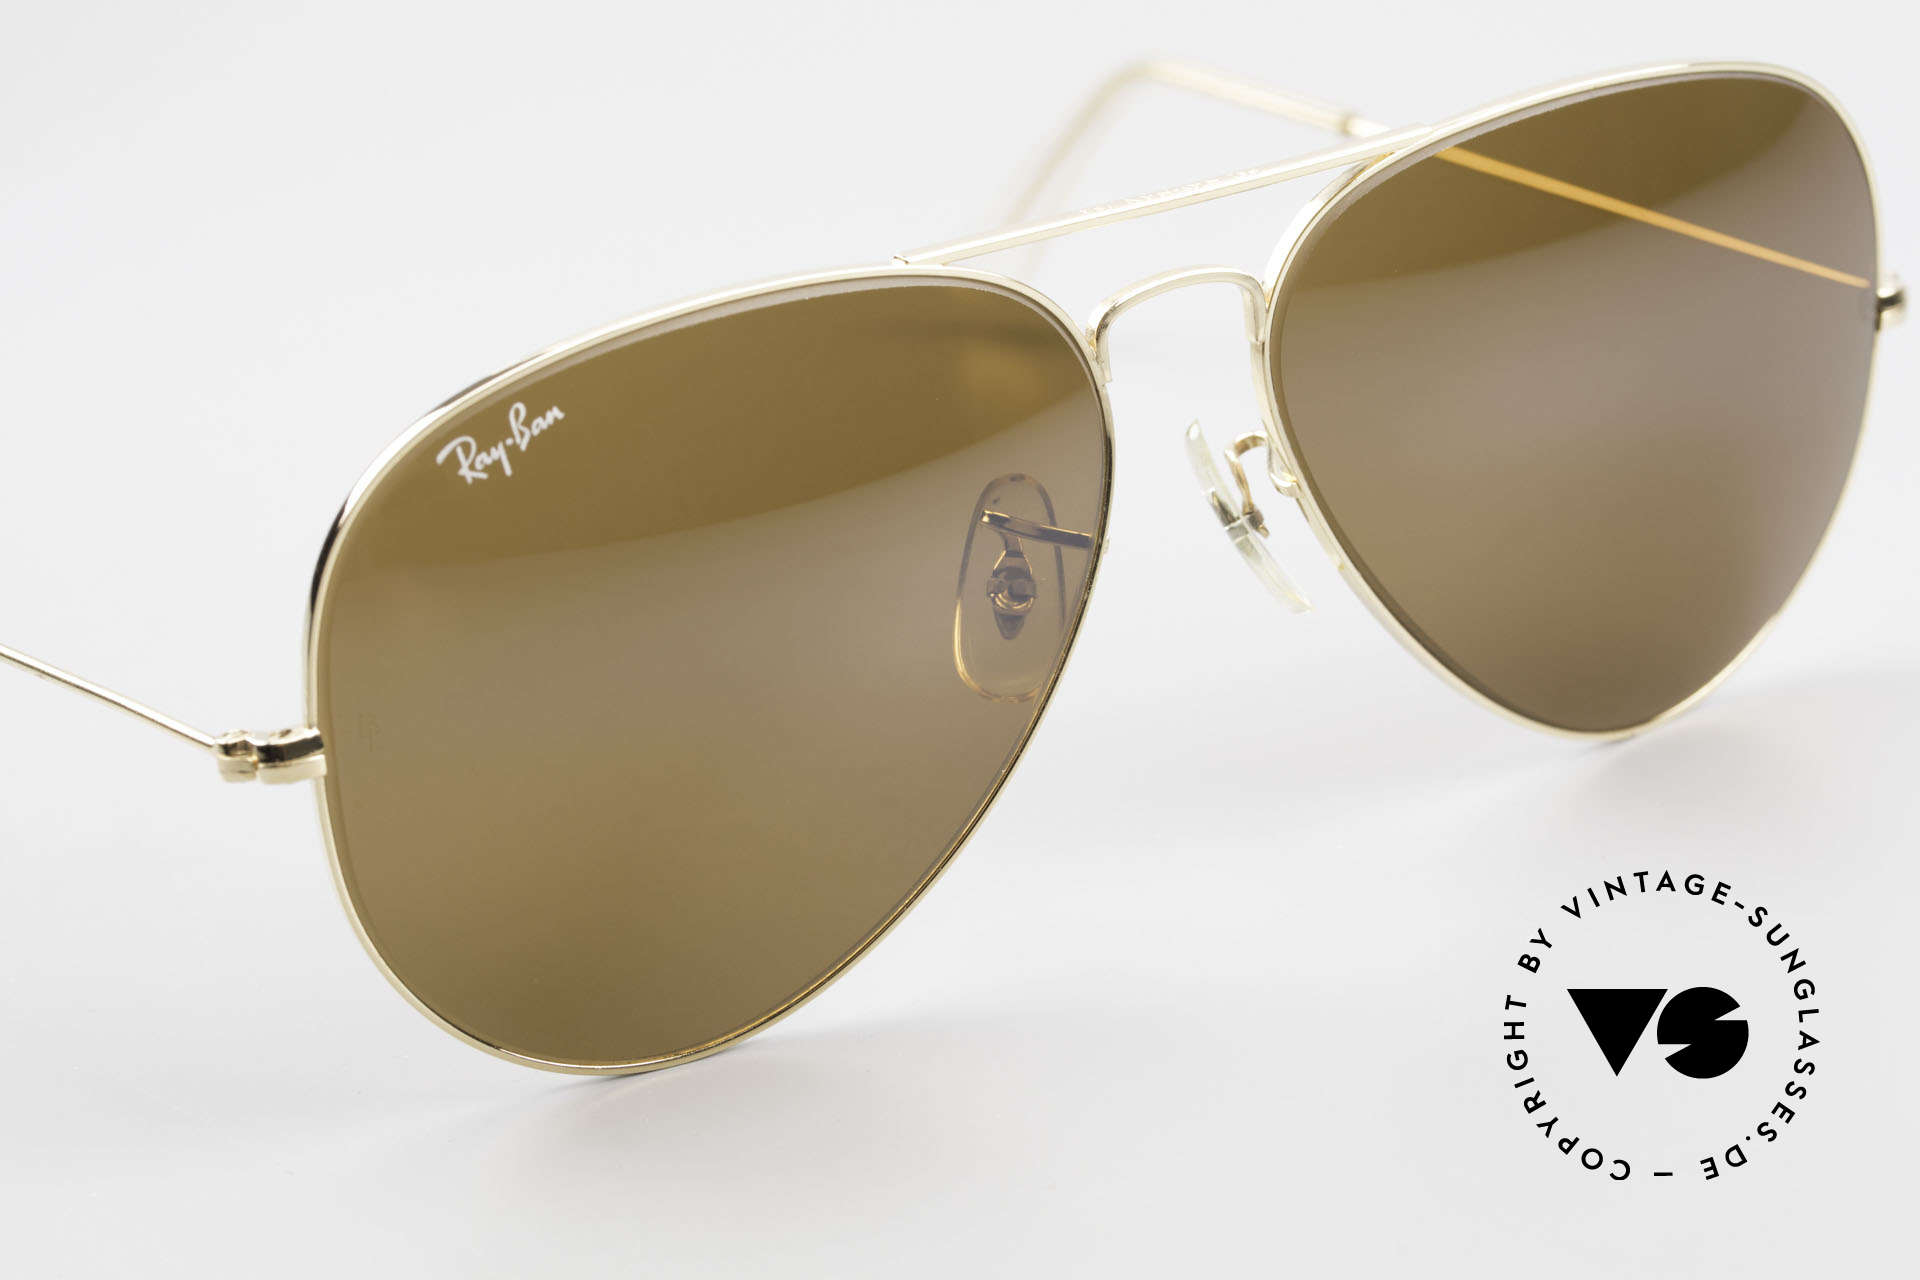 Ray Ban Large Metal II Old Ray-Ban B&L USA Shades, 100% UV protection and with the B&L engraving, Made for Men